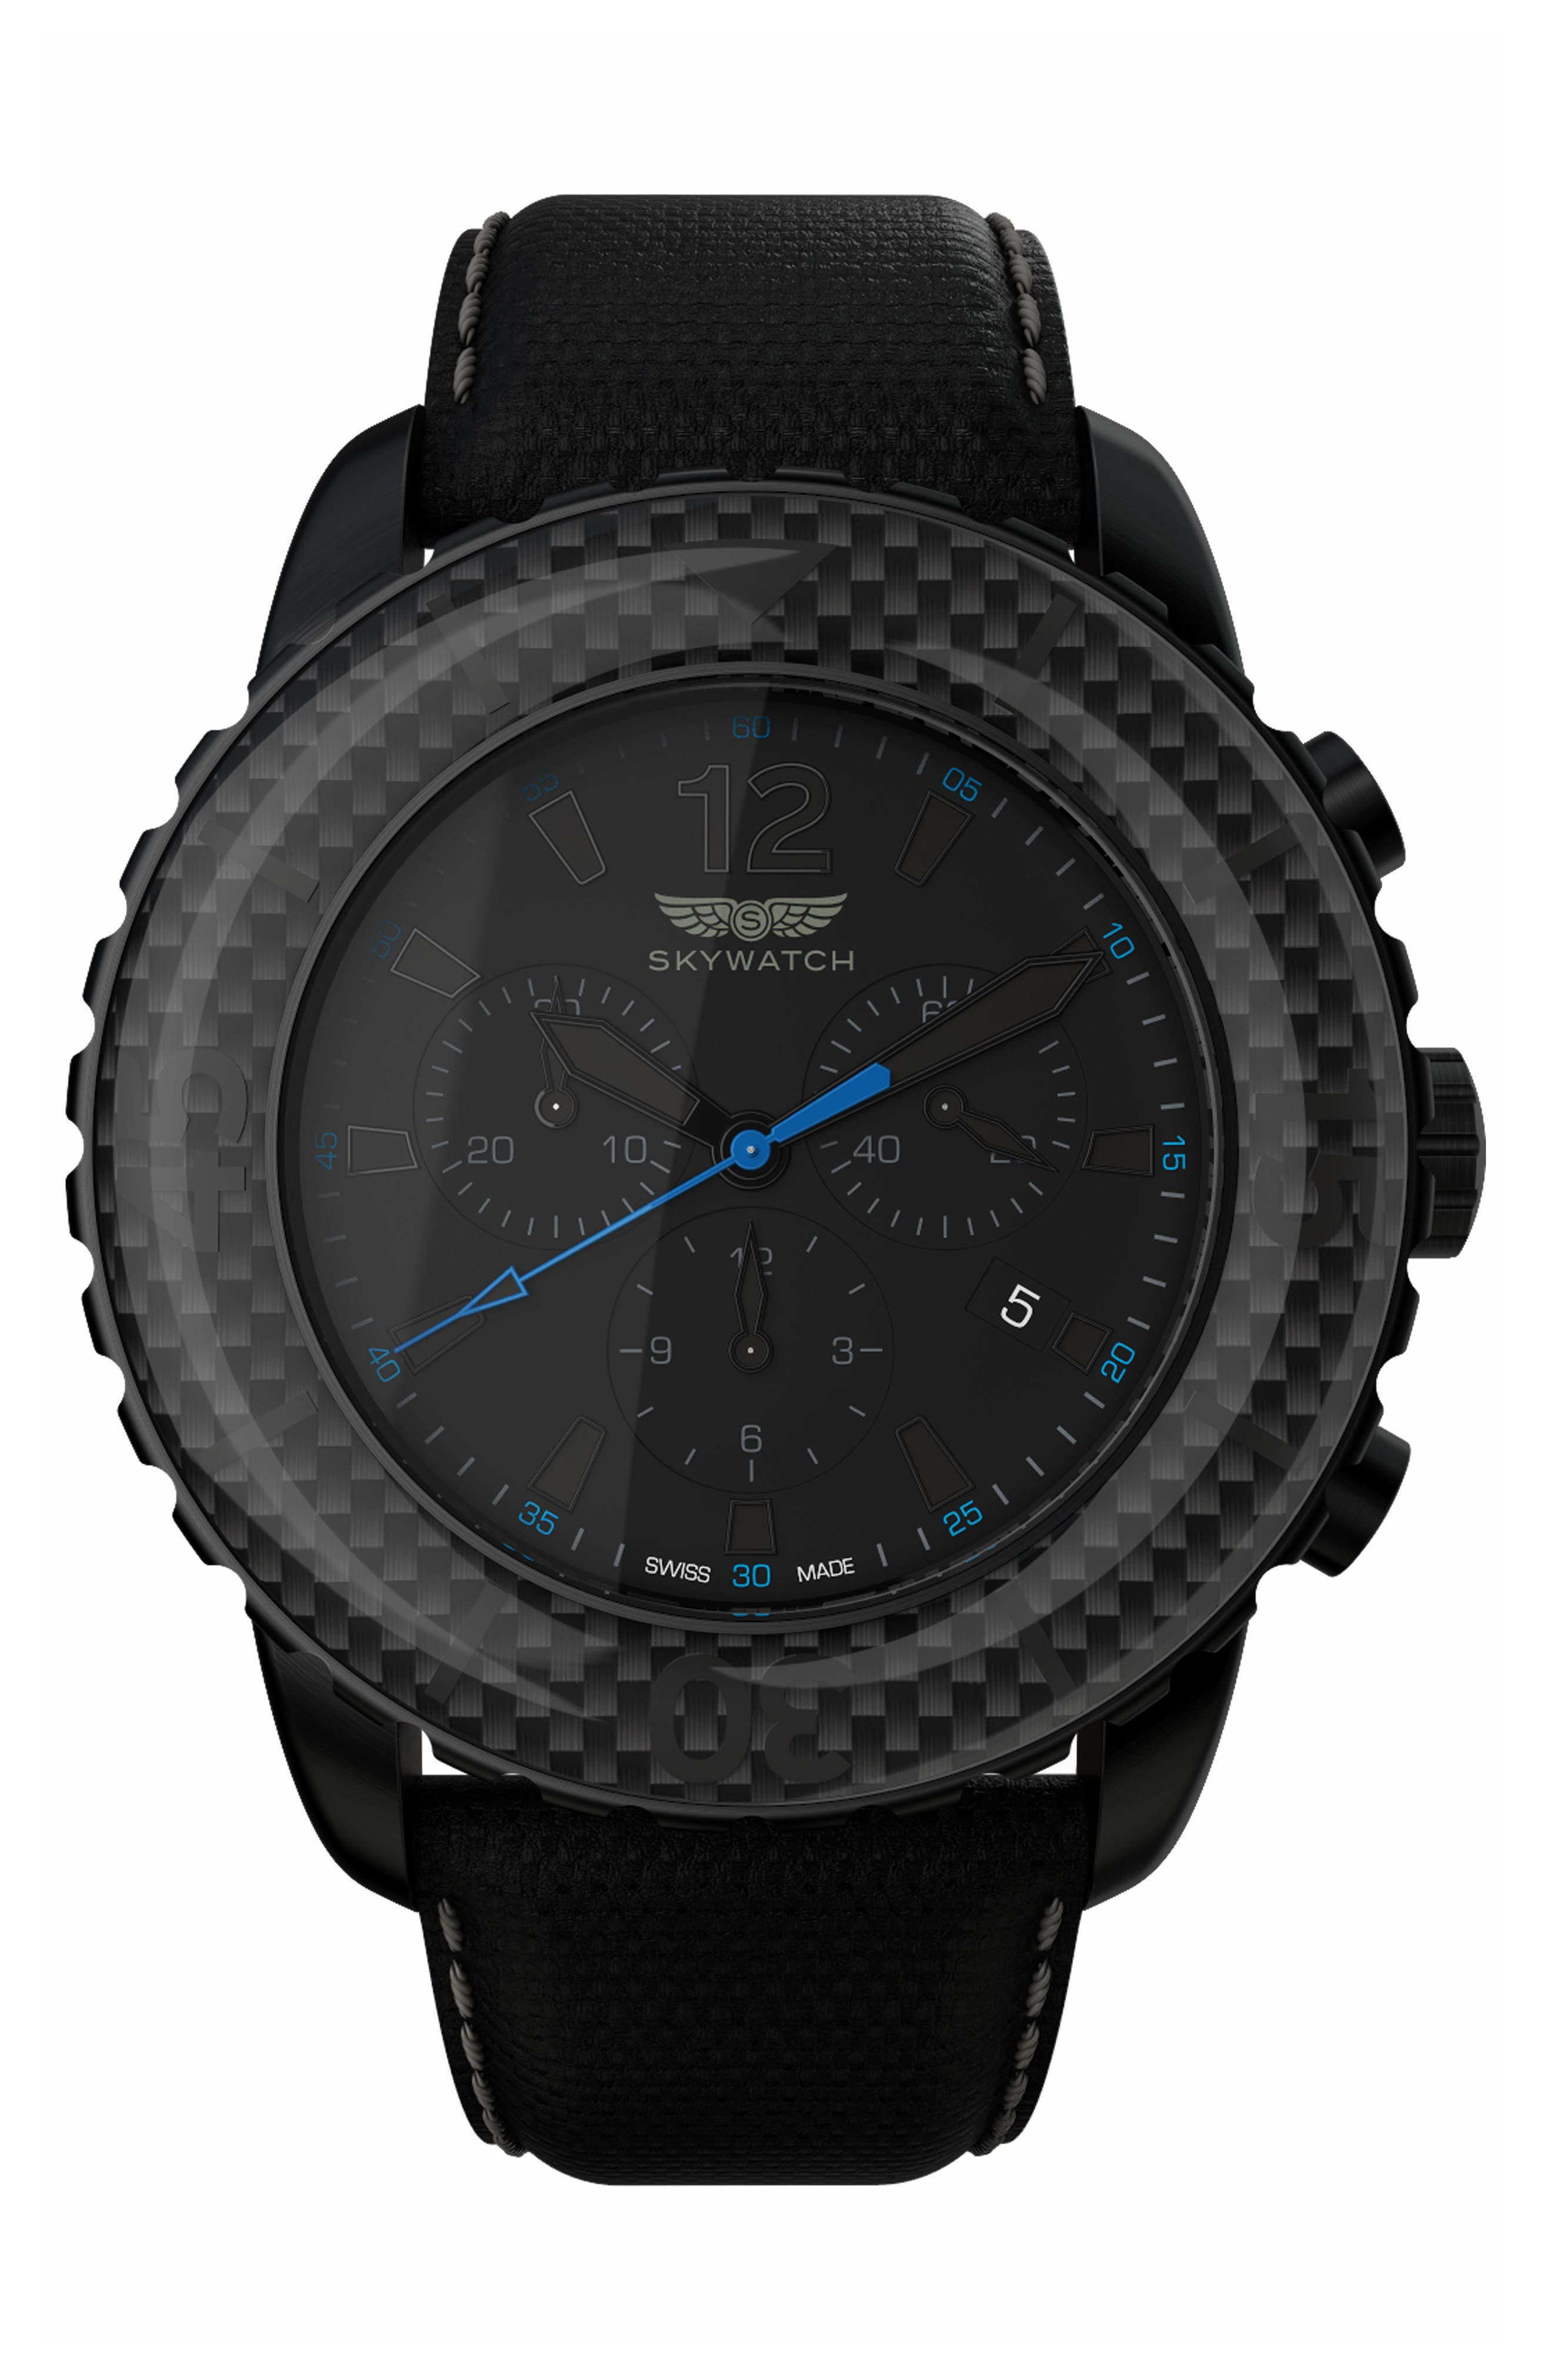 Main Image - SKYWATCH Classic Chronograph Woven Strap Watch, 46mm